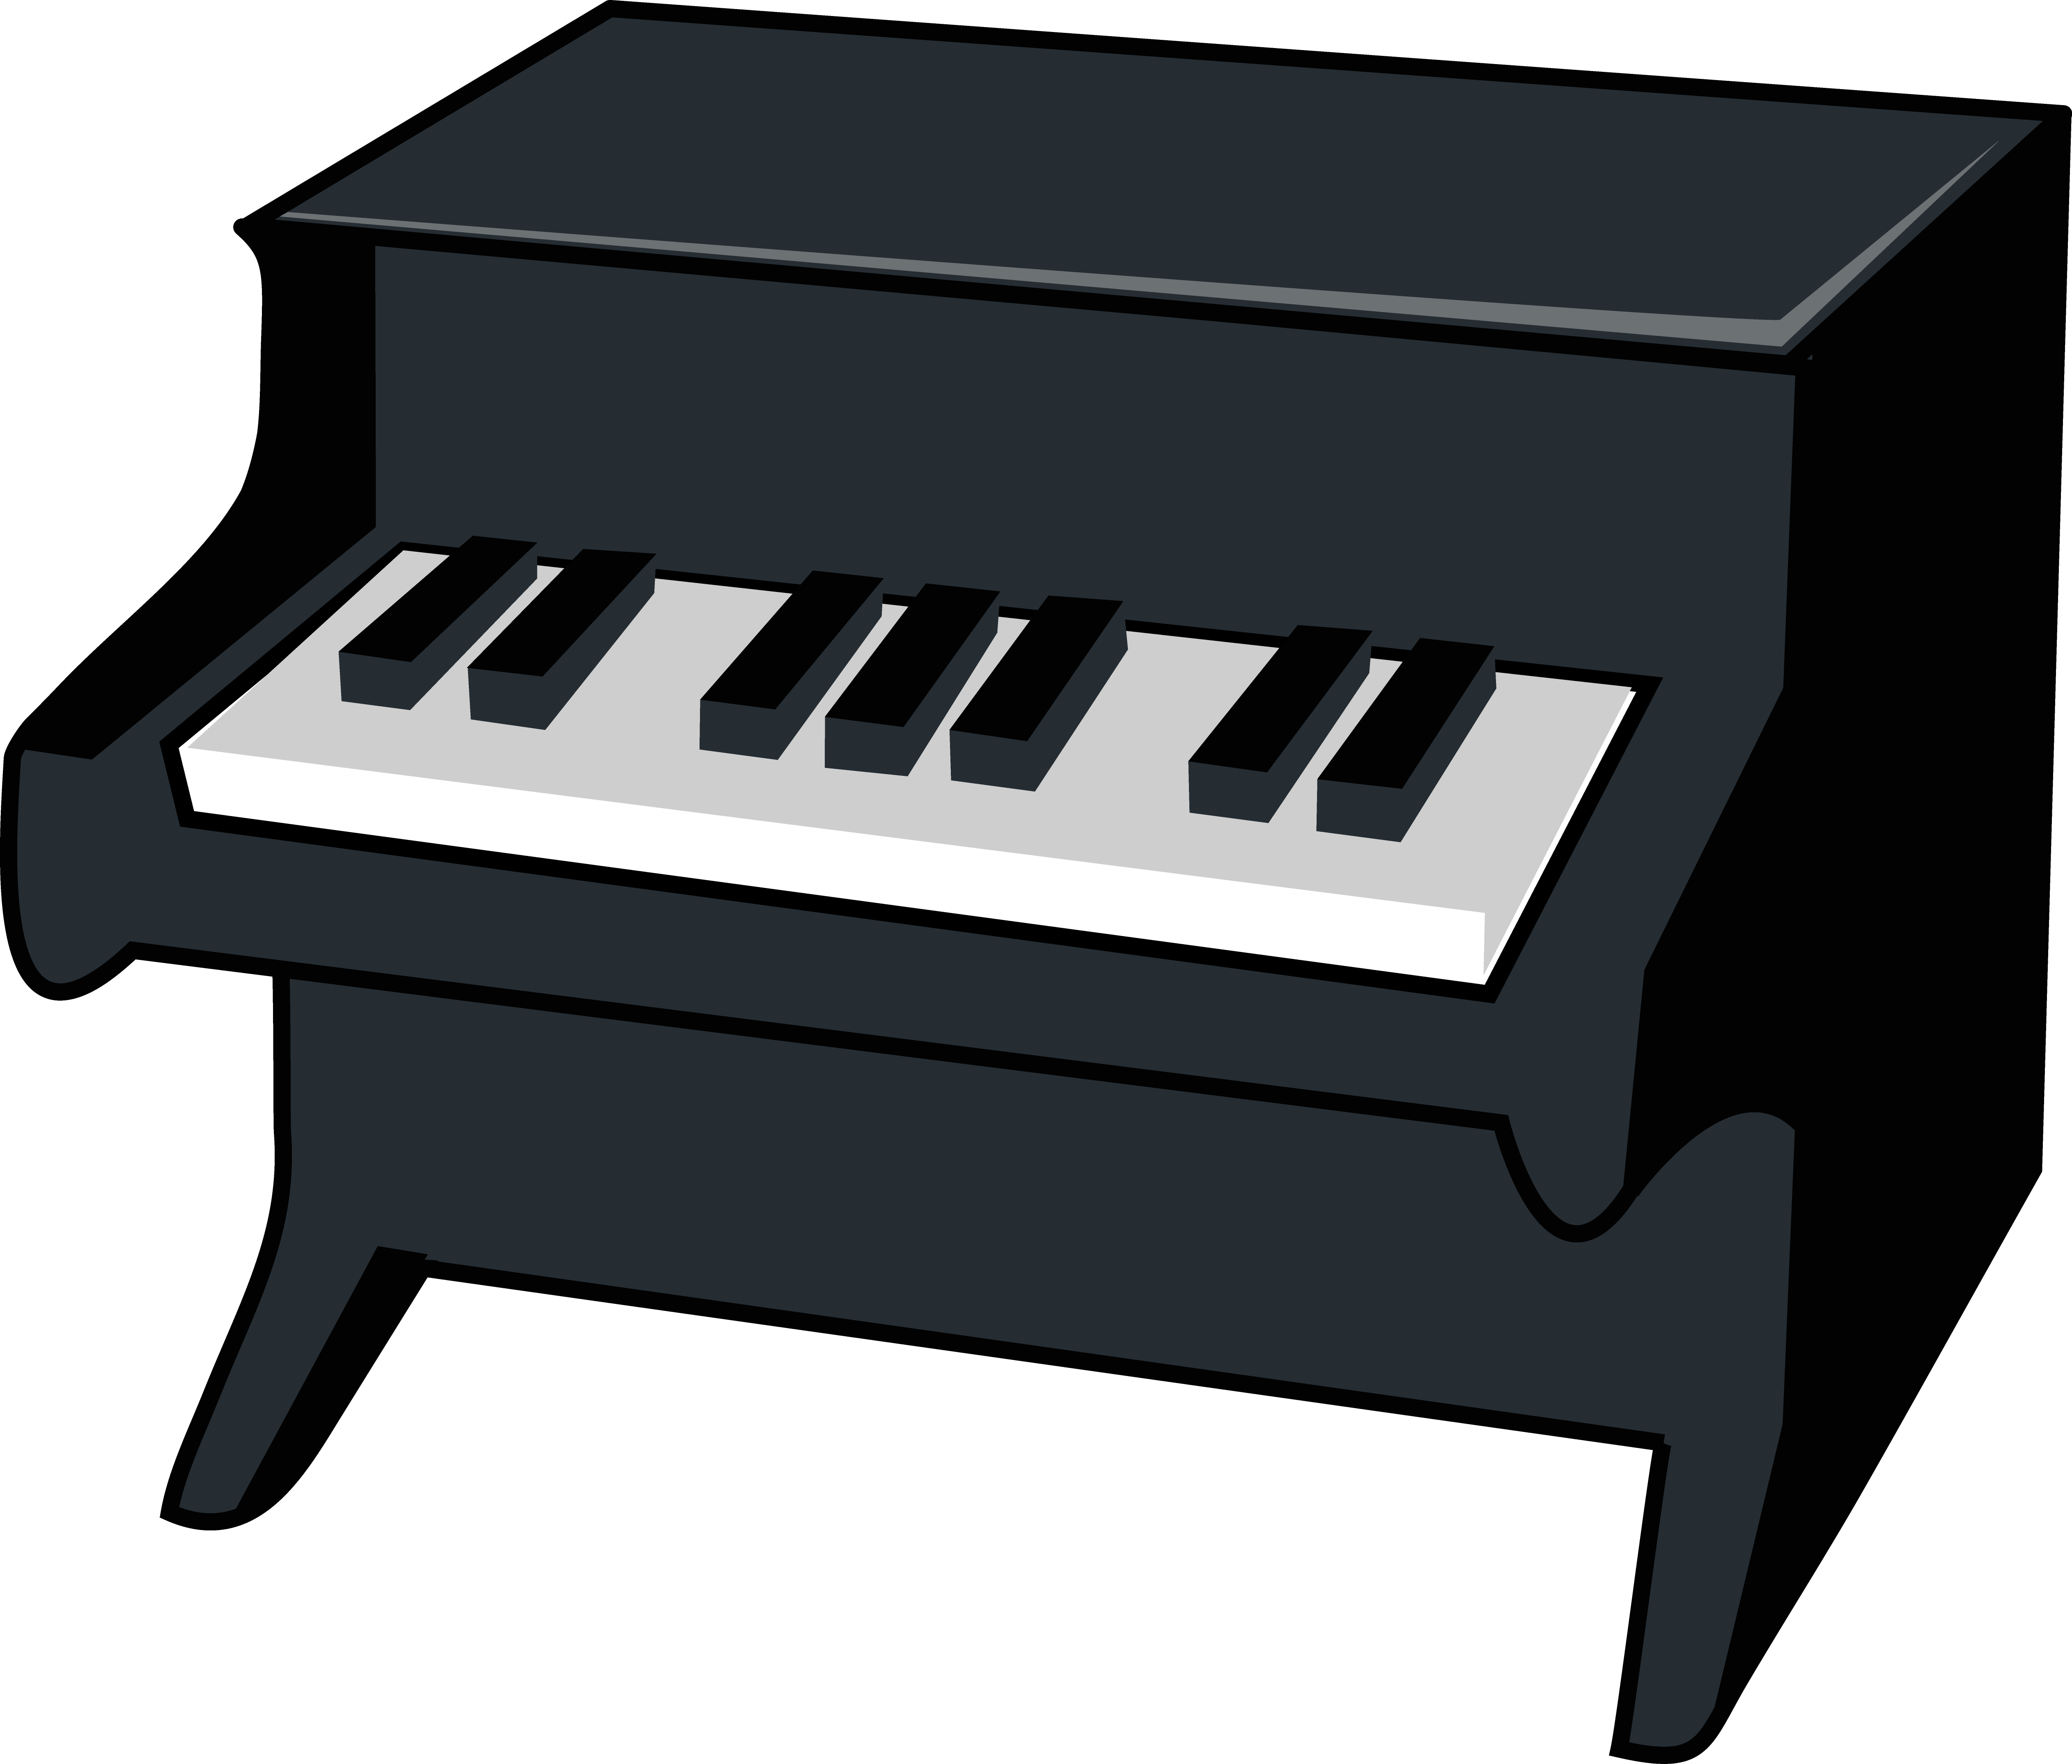 5047x4297 Piano Clipart Black And White Free Clipart Images 2